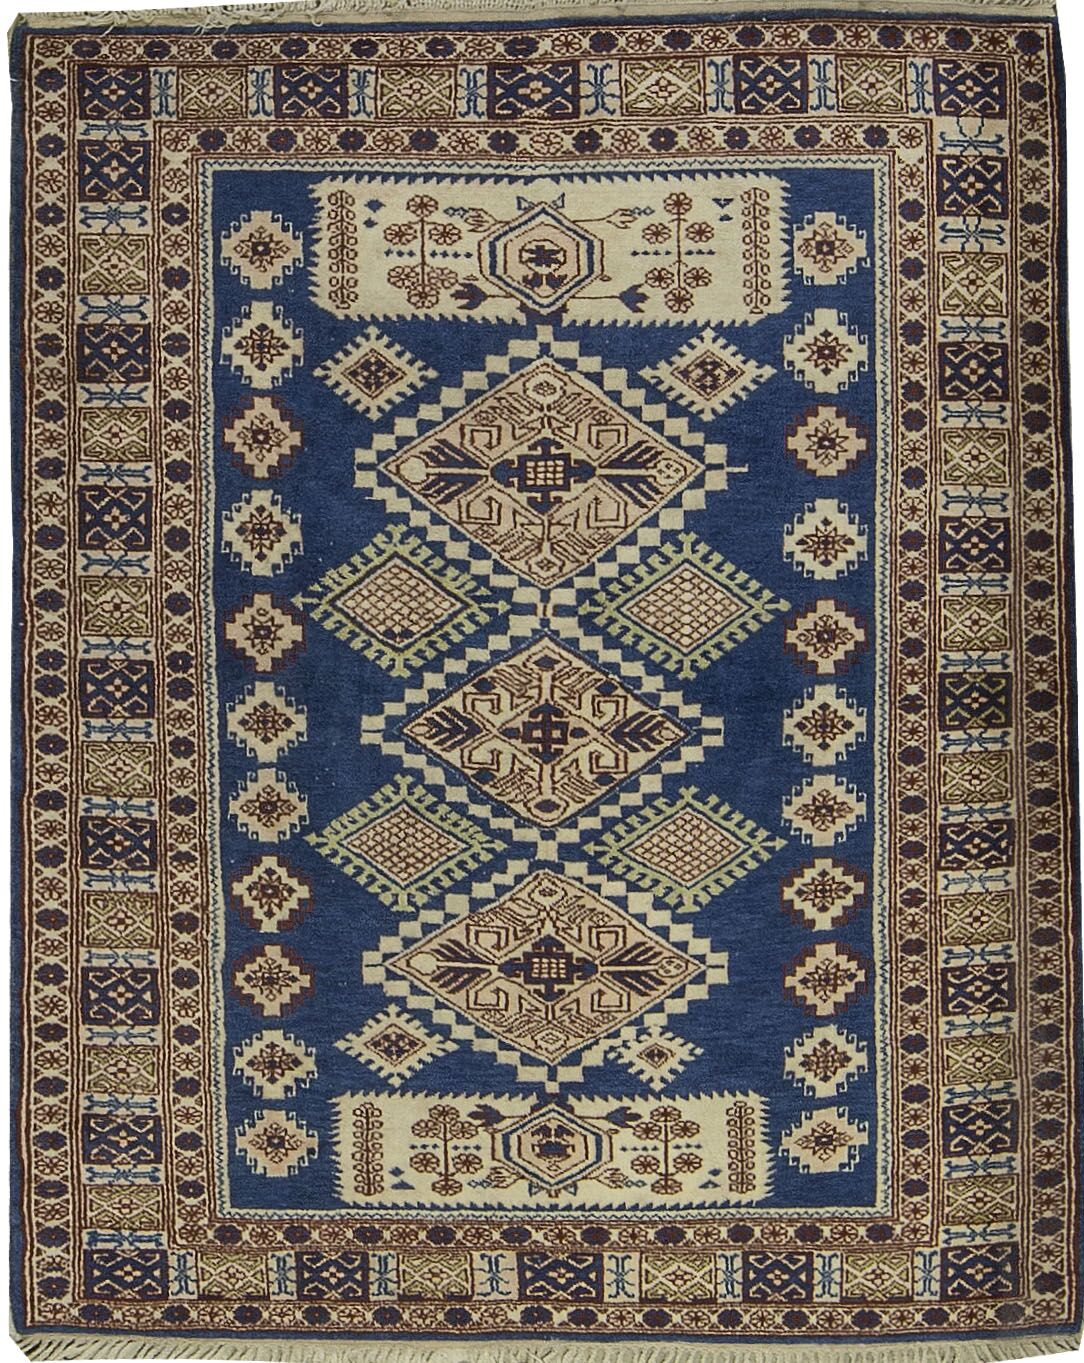 Semi-Antique Turkish Kazak Hand-Knotted Wool Blue Area Rug